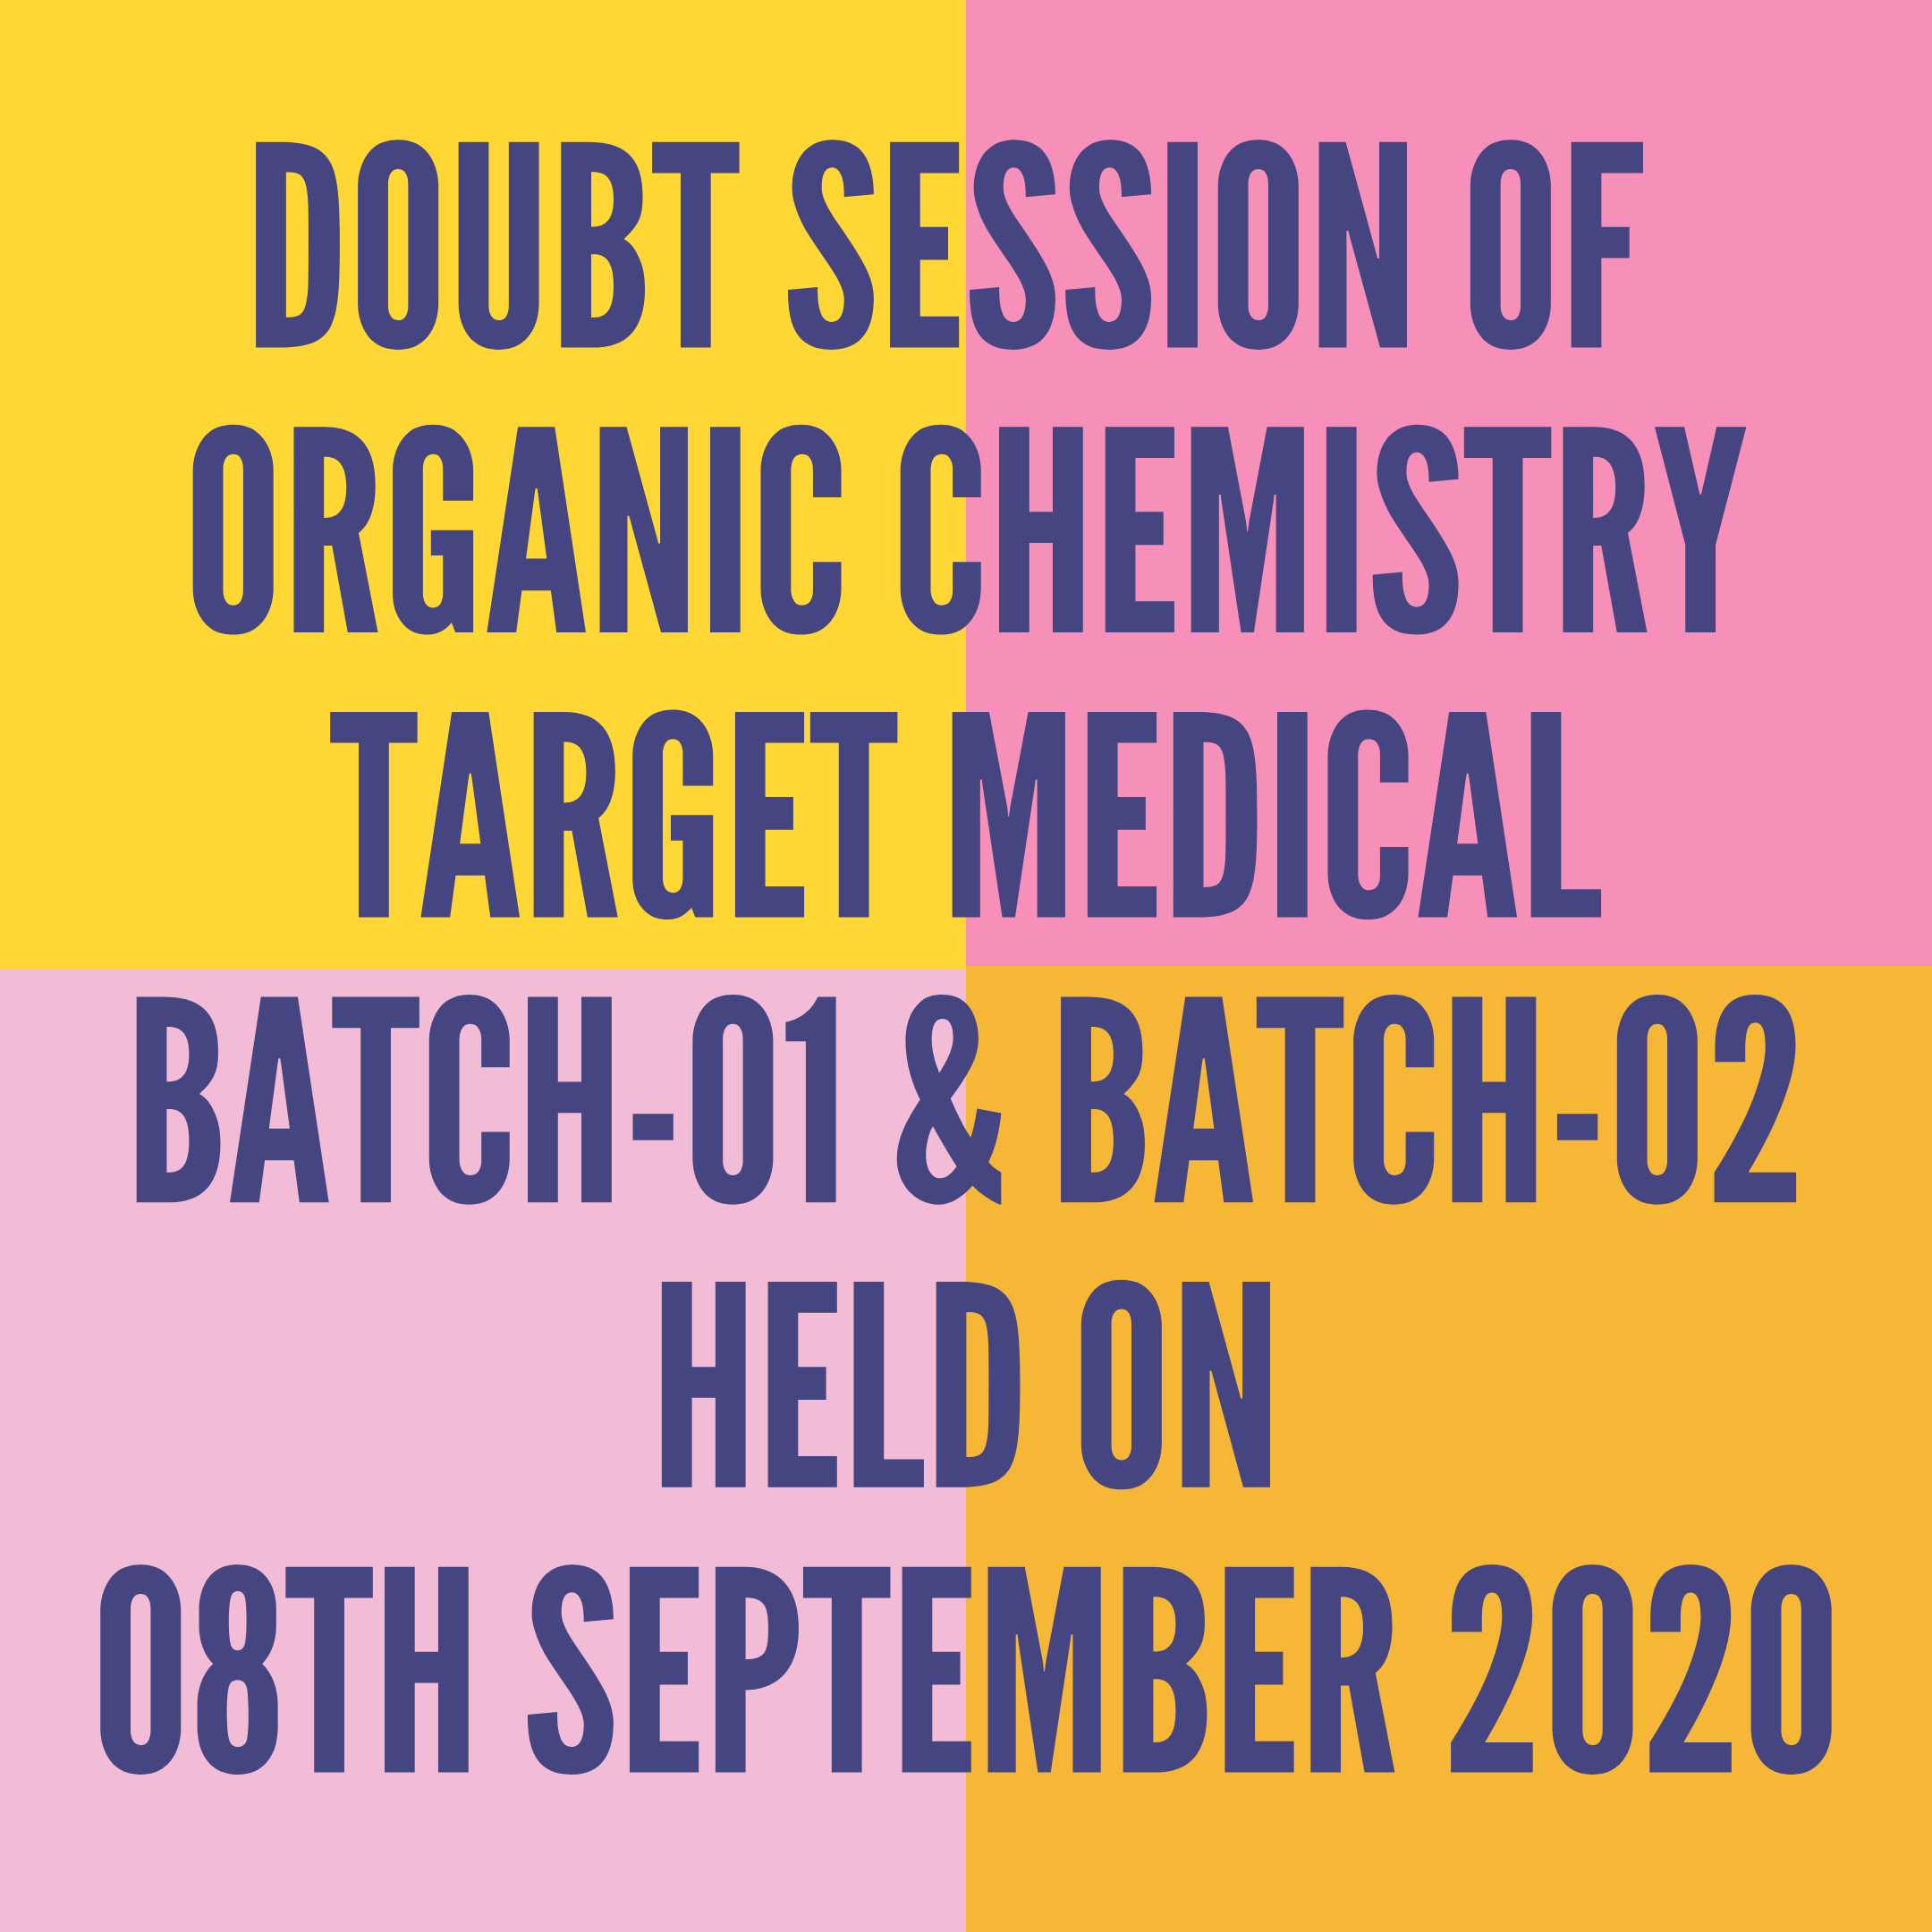 DOUBT SESSION OF ORGANIC CHEMISTRY TARGET MEDICAL BATCH-01 & BATCH-02 HELD ON 08TH SEPTEMBER 2020